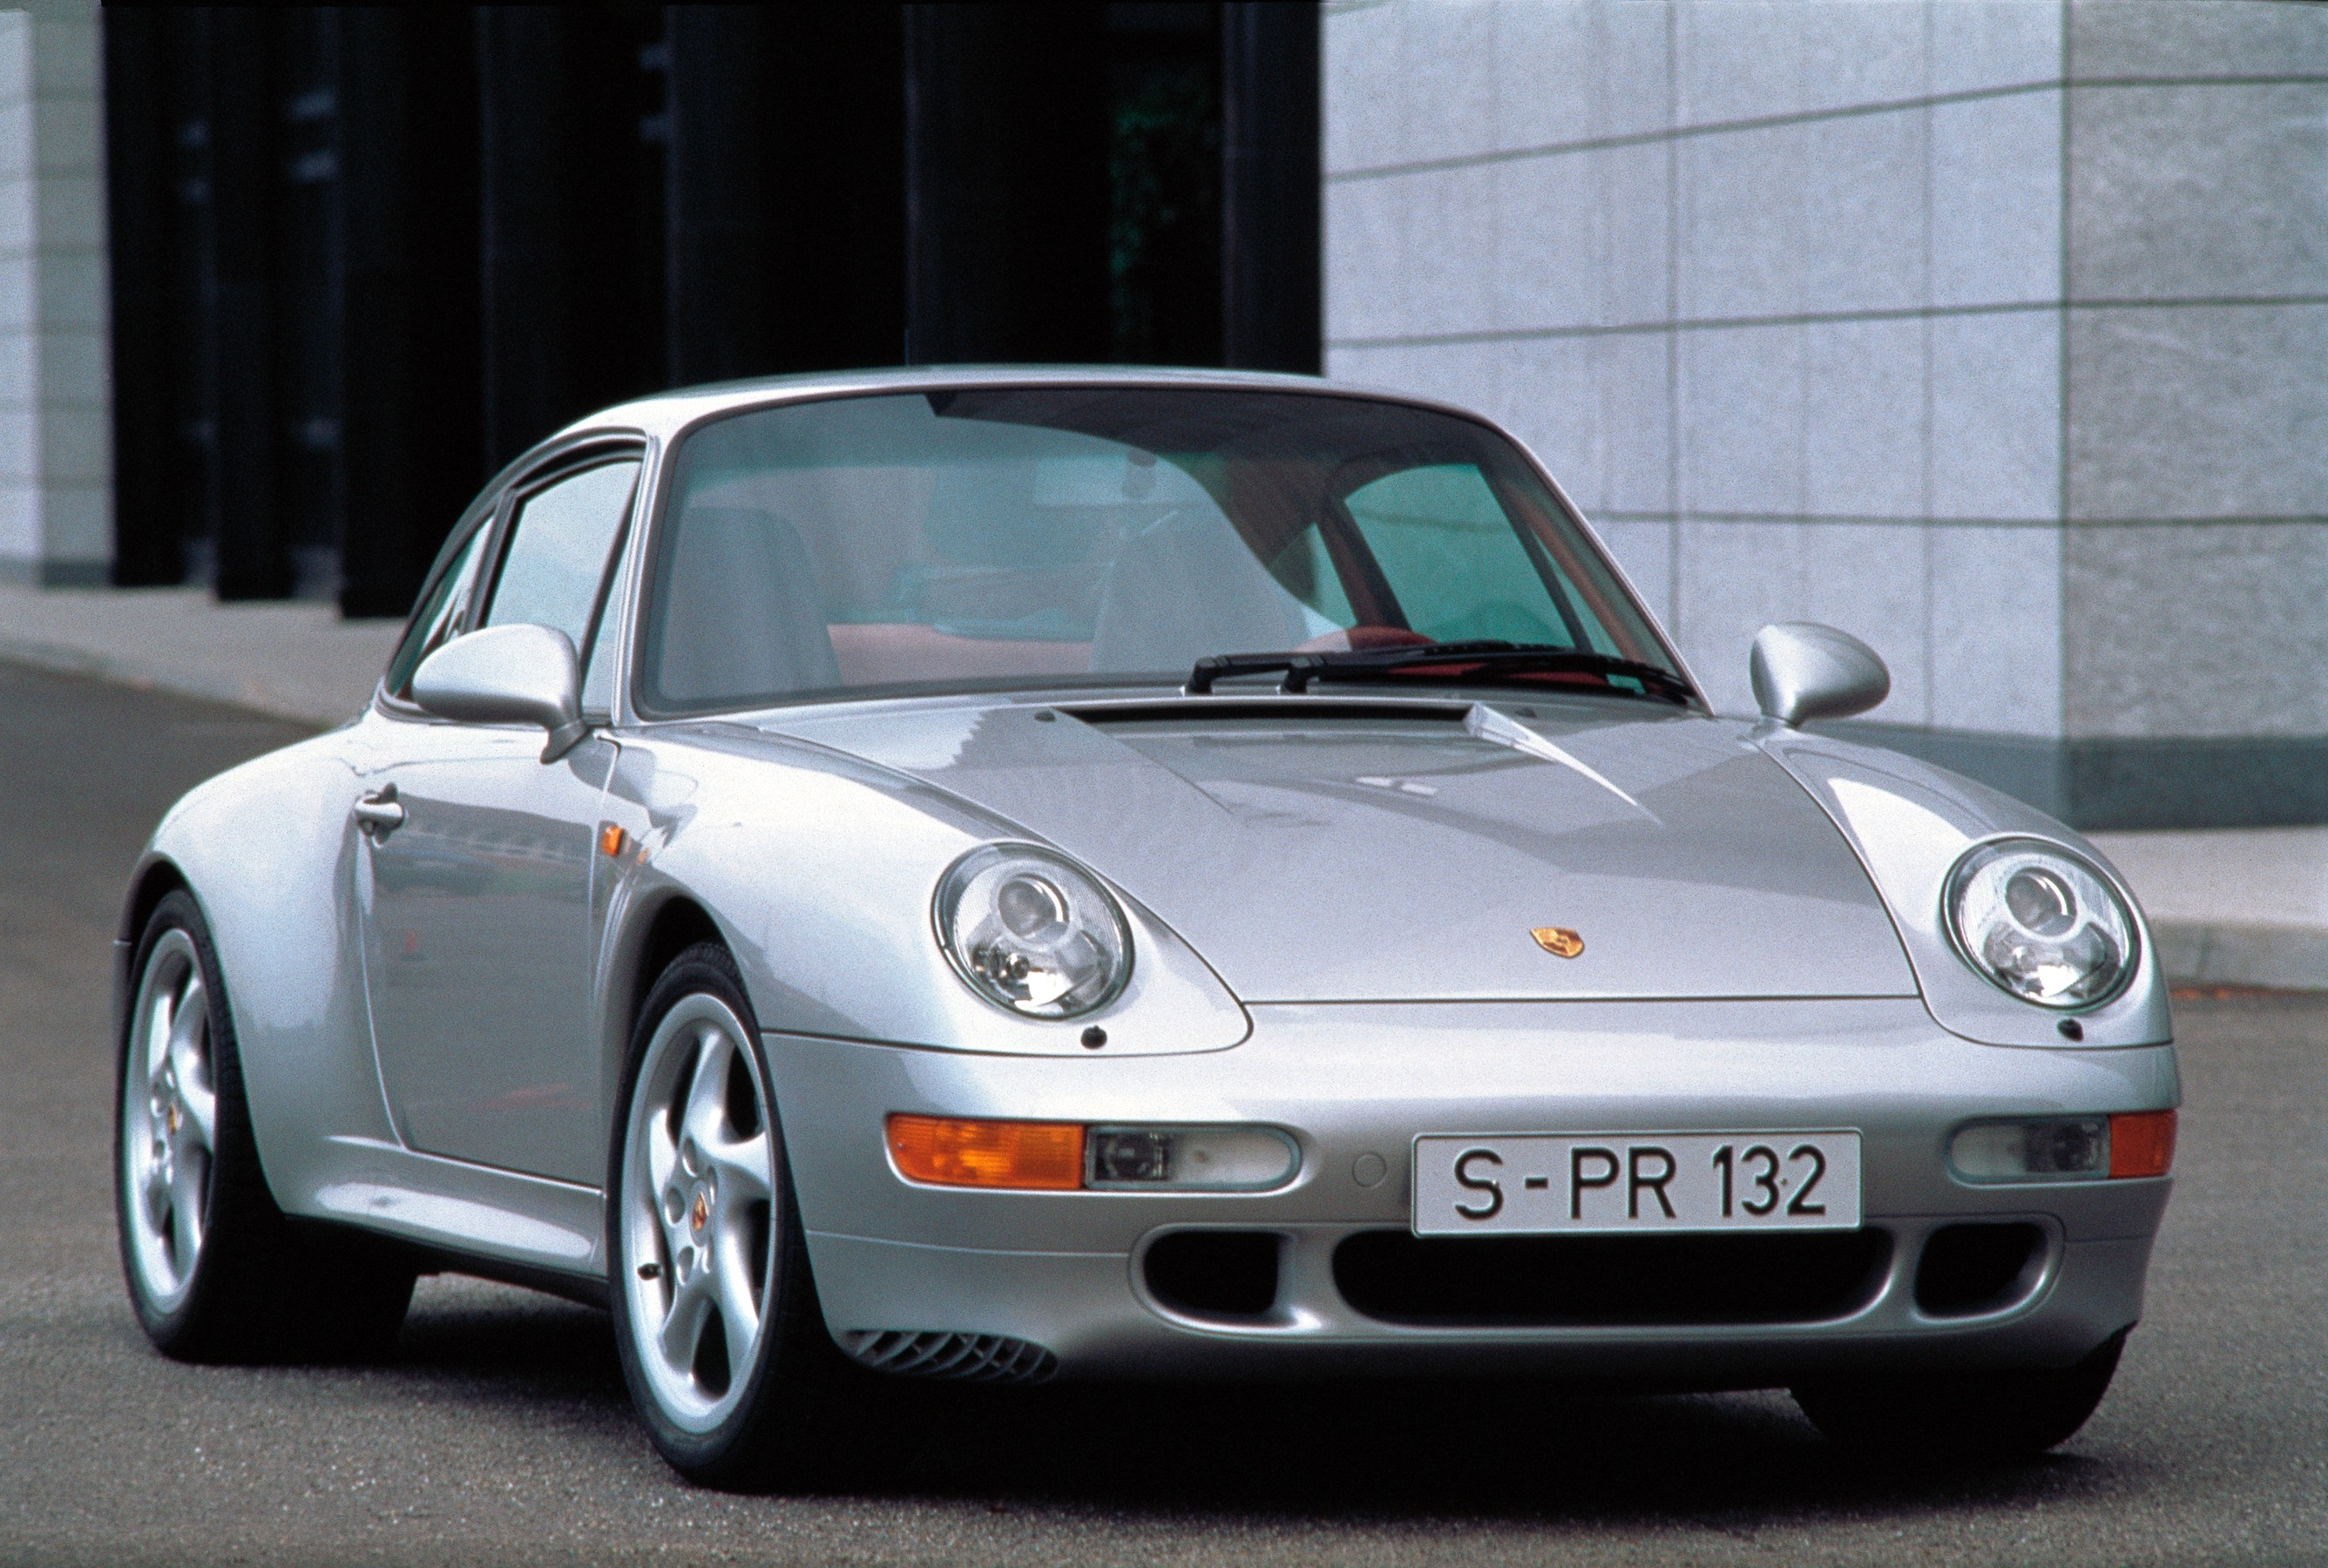 porsche 911 carrera s 993 specs 1995 1996 1997. Black Bedroom Furniture Sets. Home Design Ideas